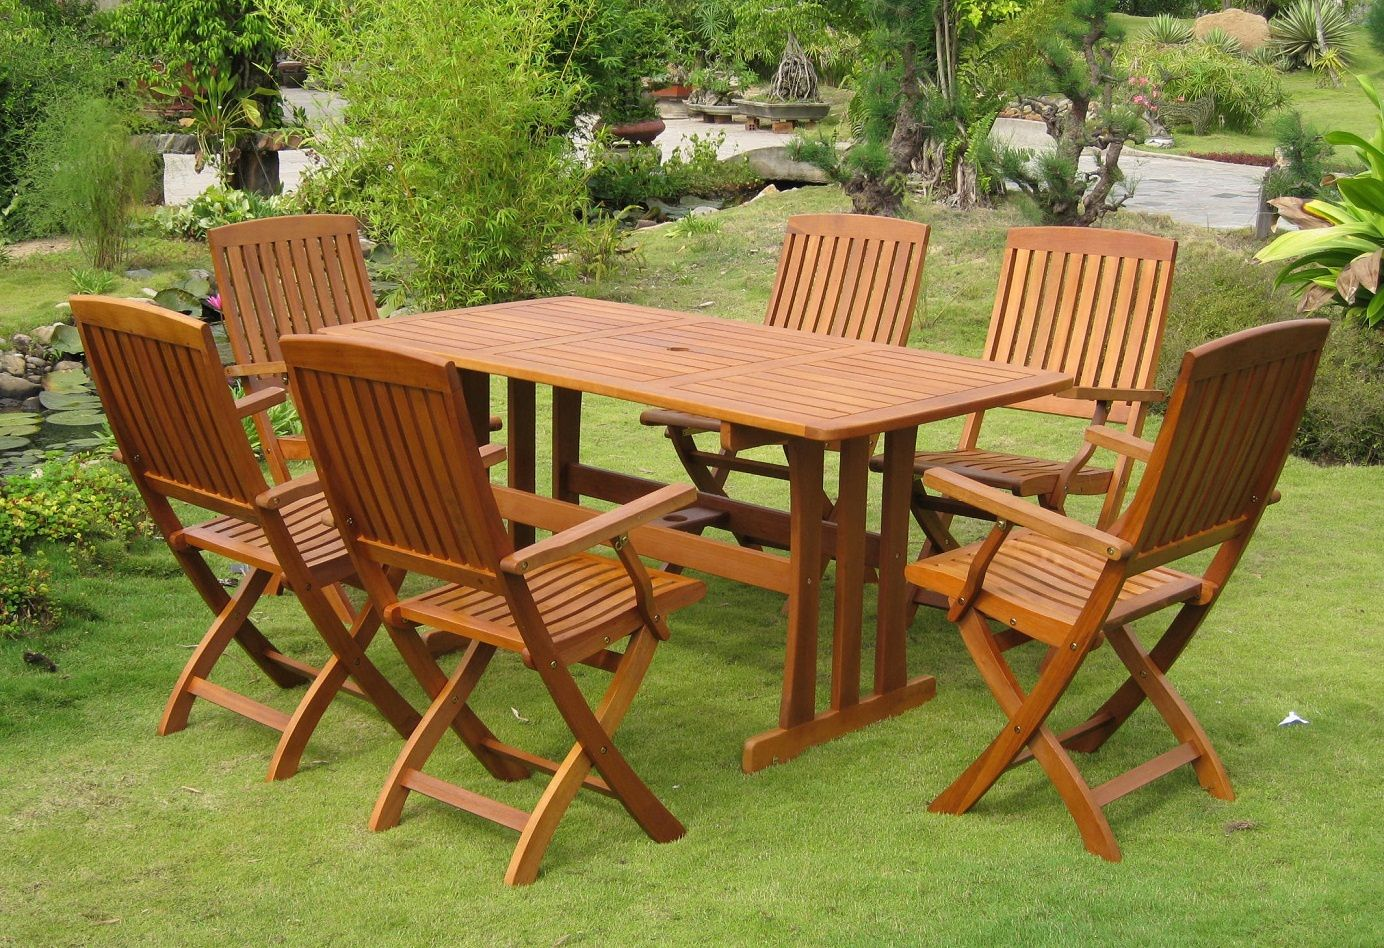 Cheap Wooden Outdoor Furniture Cool Furniture Ideas Check More At Http Cacophonouscrea Teak Patio Furniture Wooden Outdoor Furniture Wooden Patio Furniture